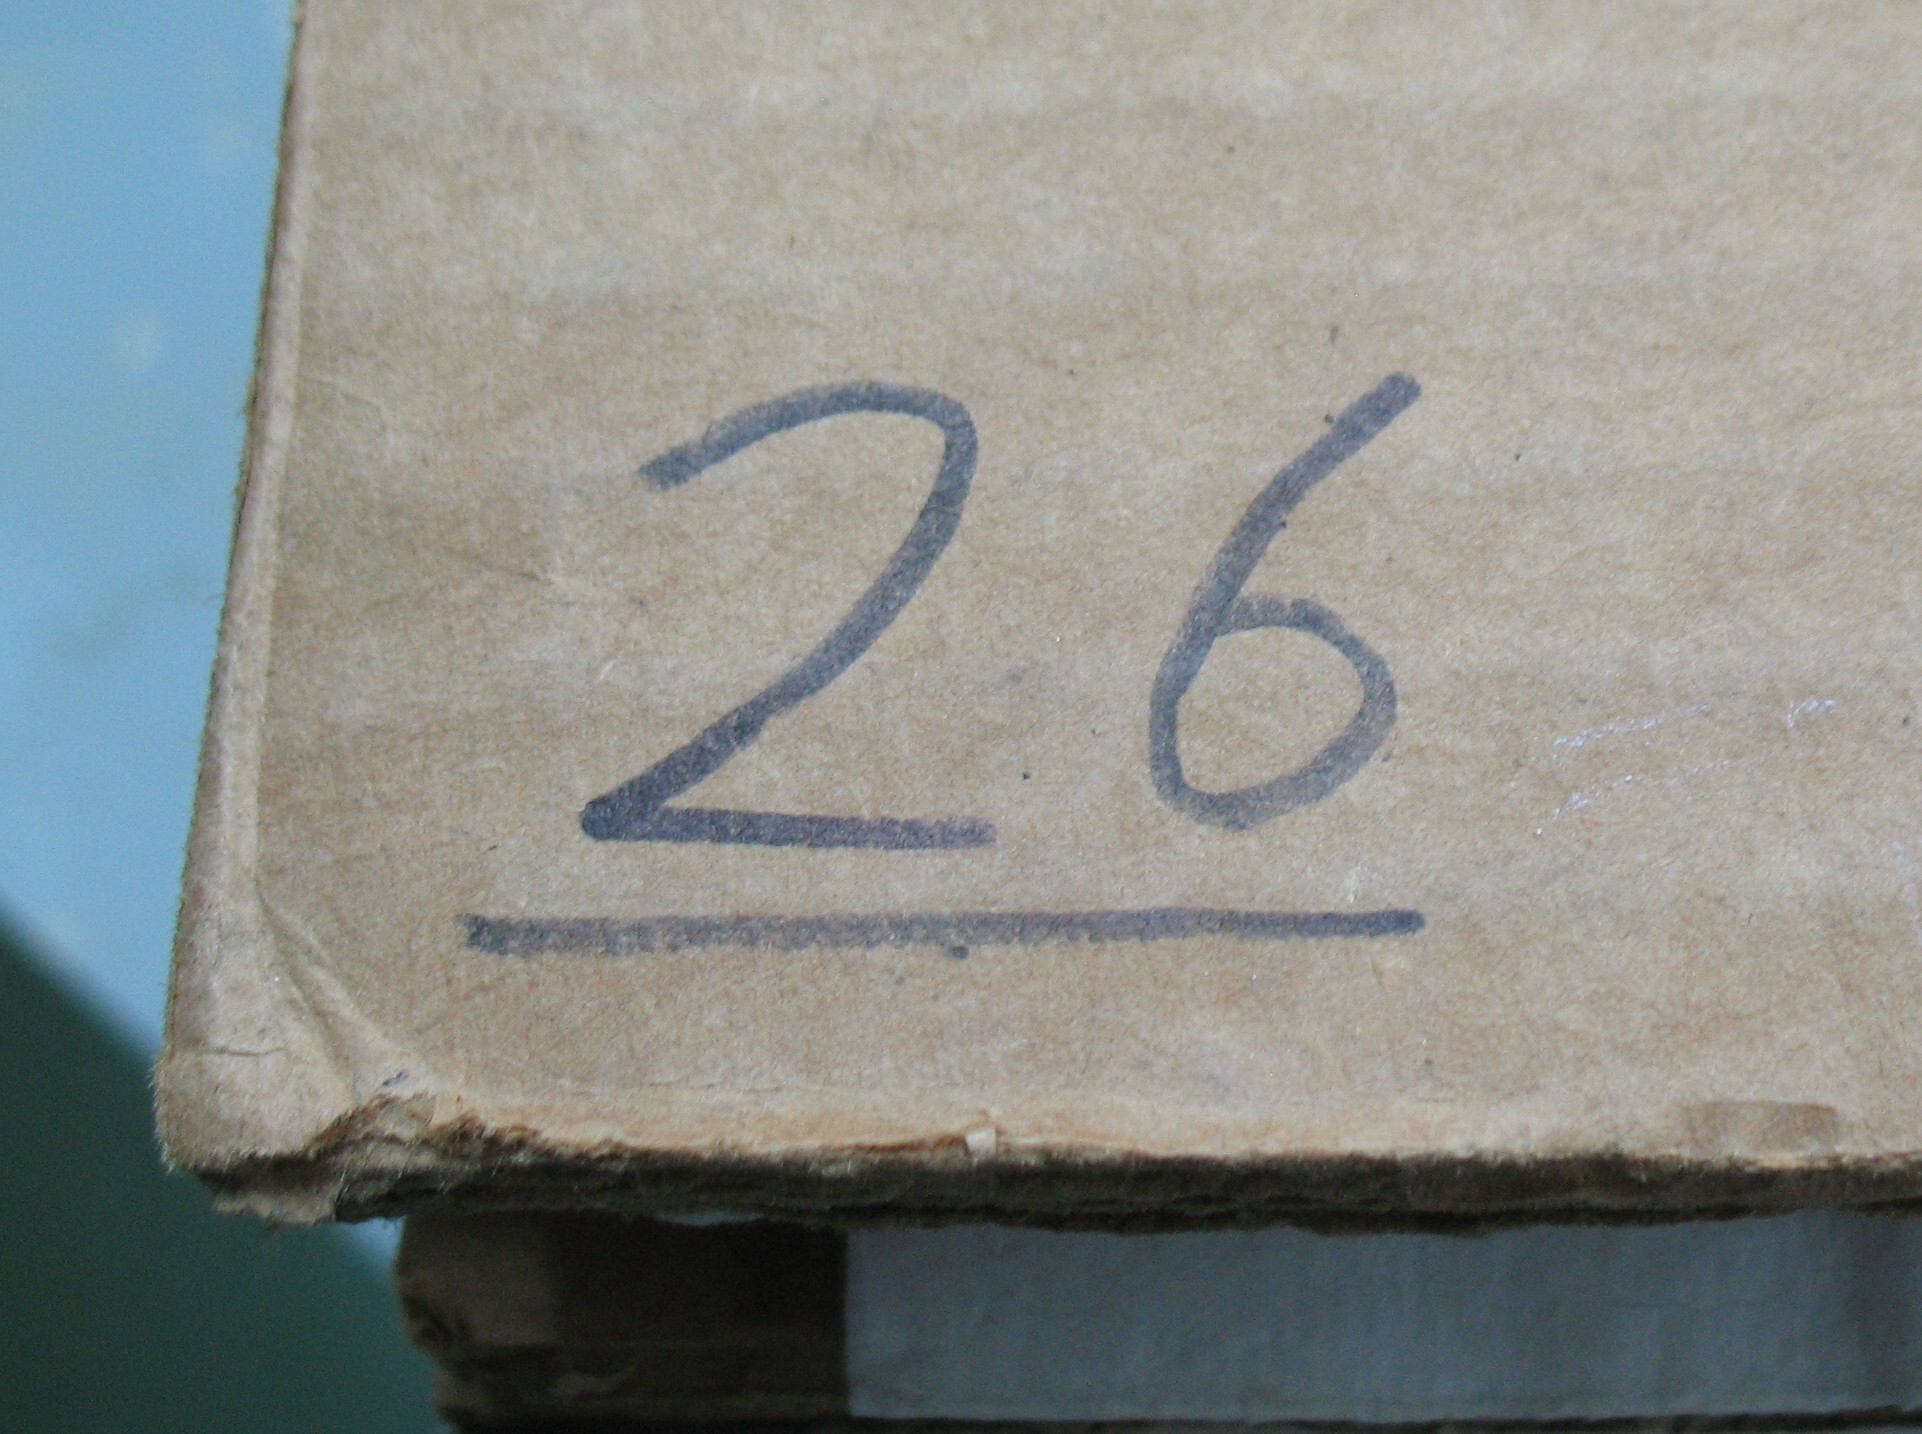 Numbering the cardboard sheets helps track which sheets belong to whom in a group workshop.